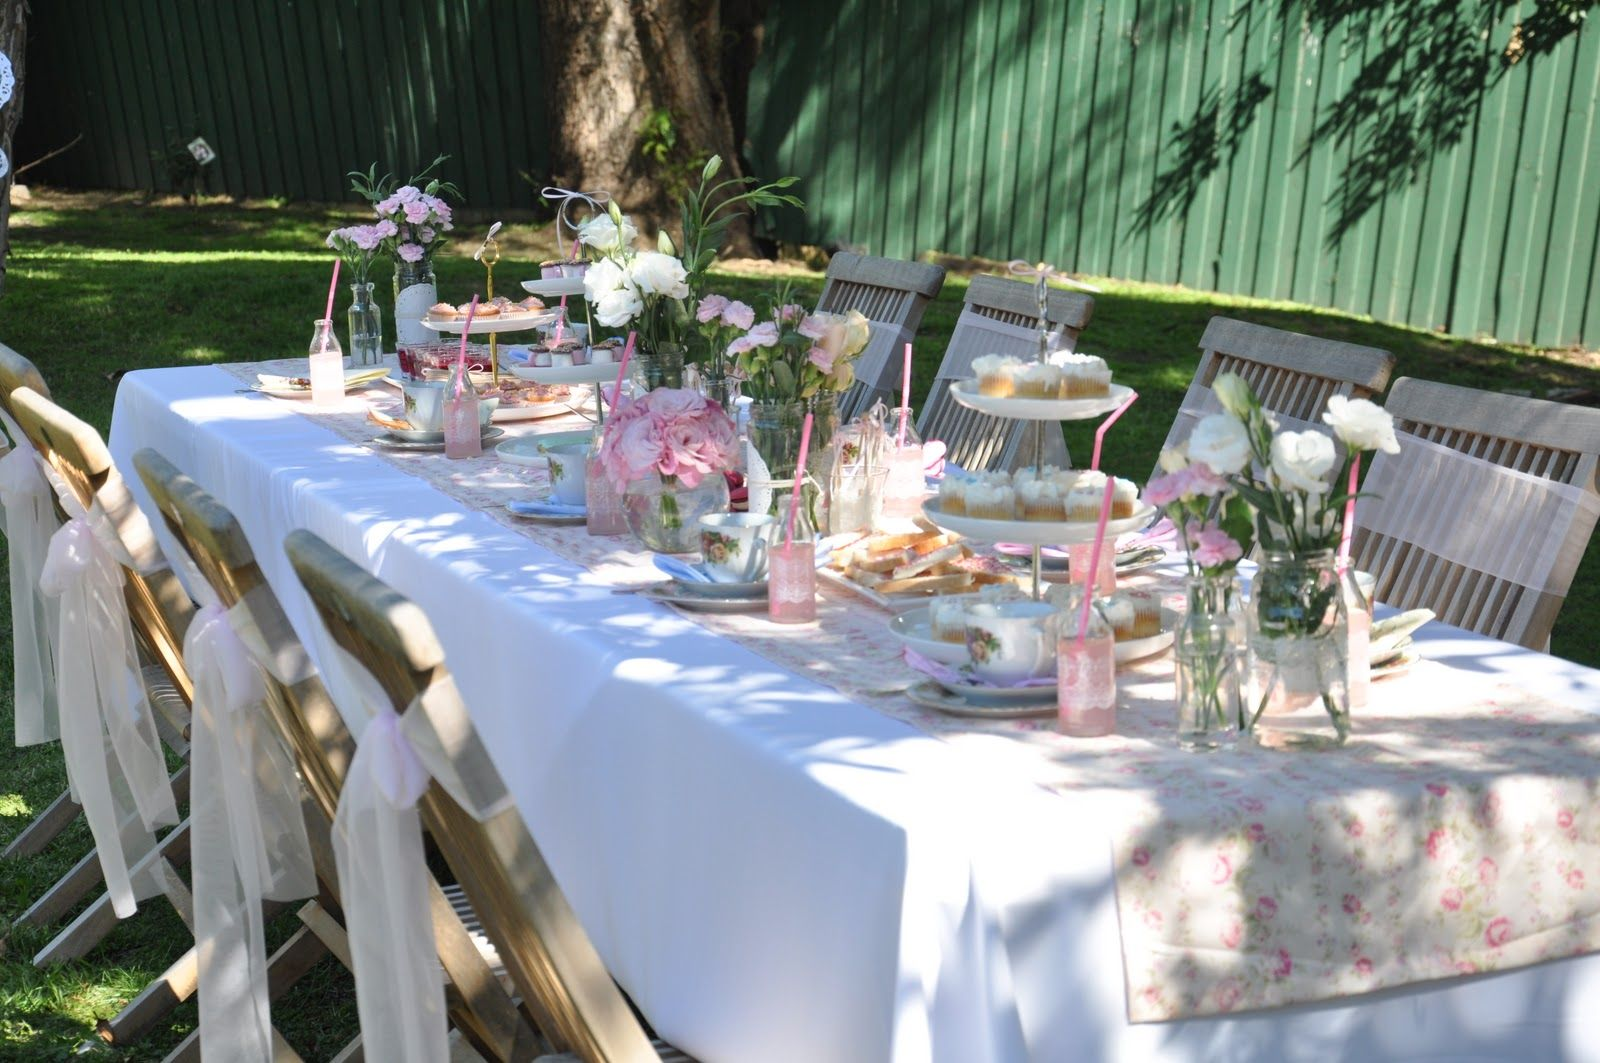 Mad hatter tea party decoration ideas - Mad Hatter Tea Garden Tea Party Table Idea Real Parties Vintage Tea Garden Party